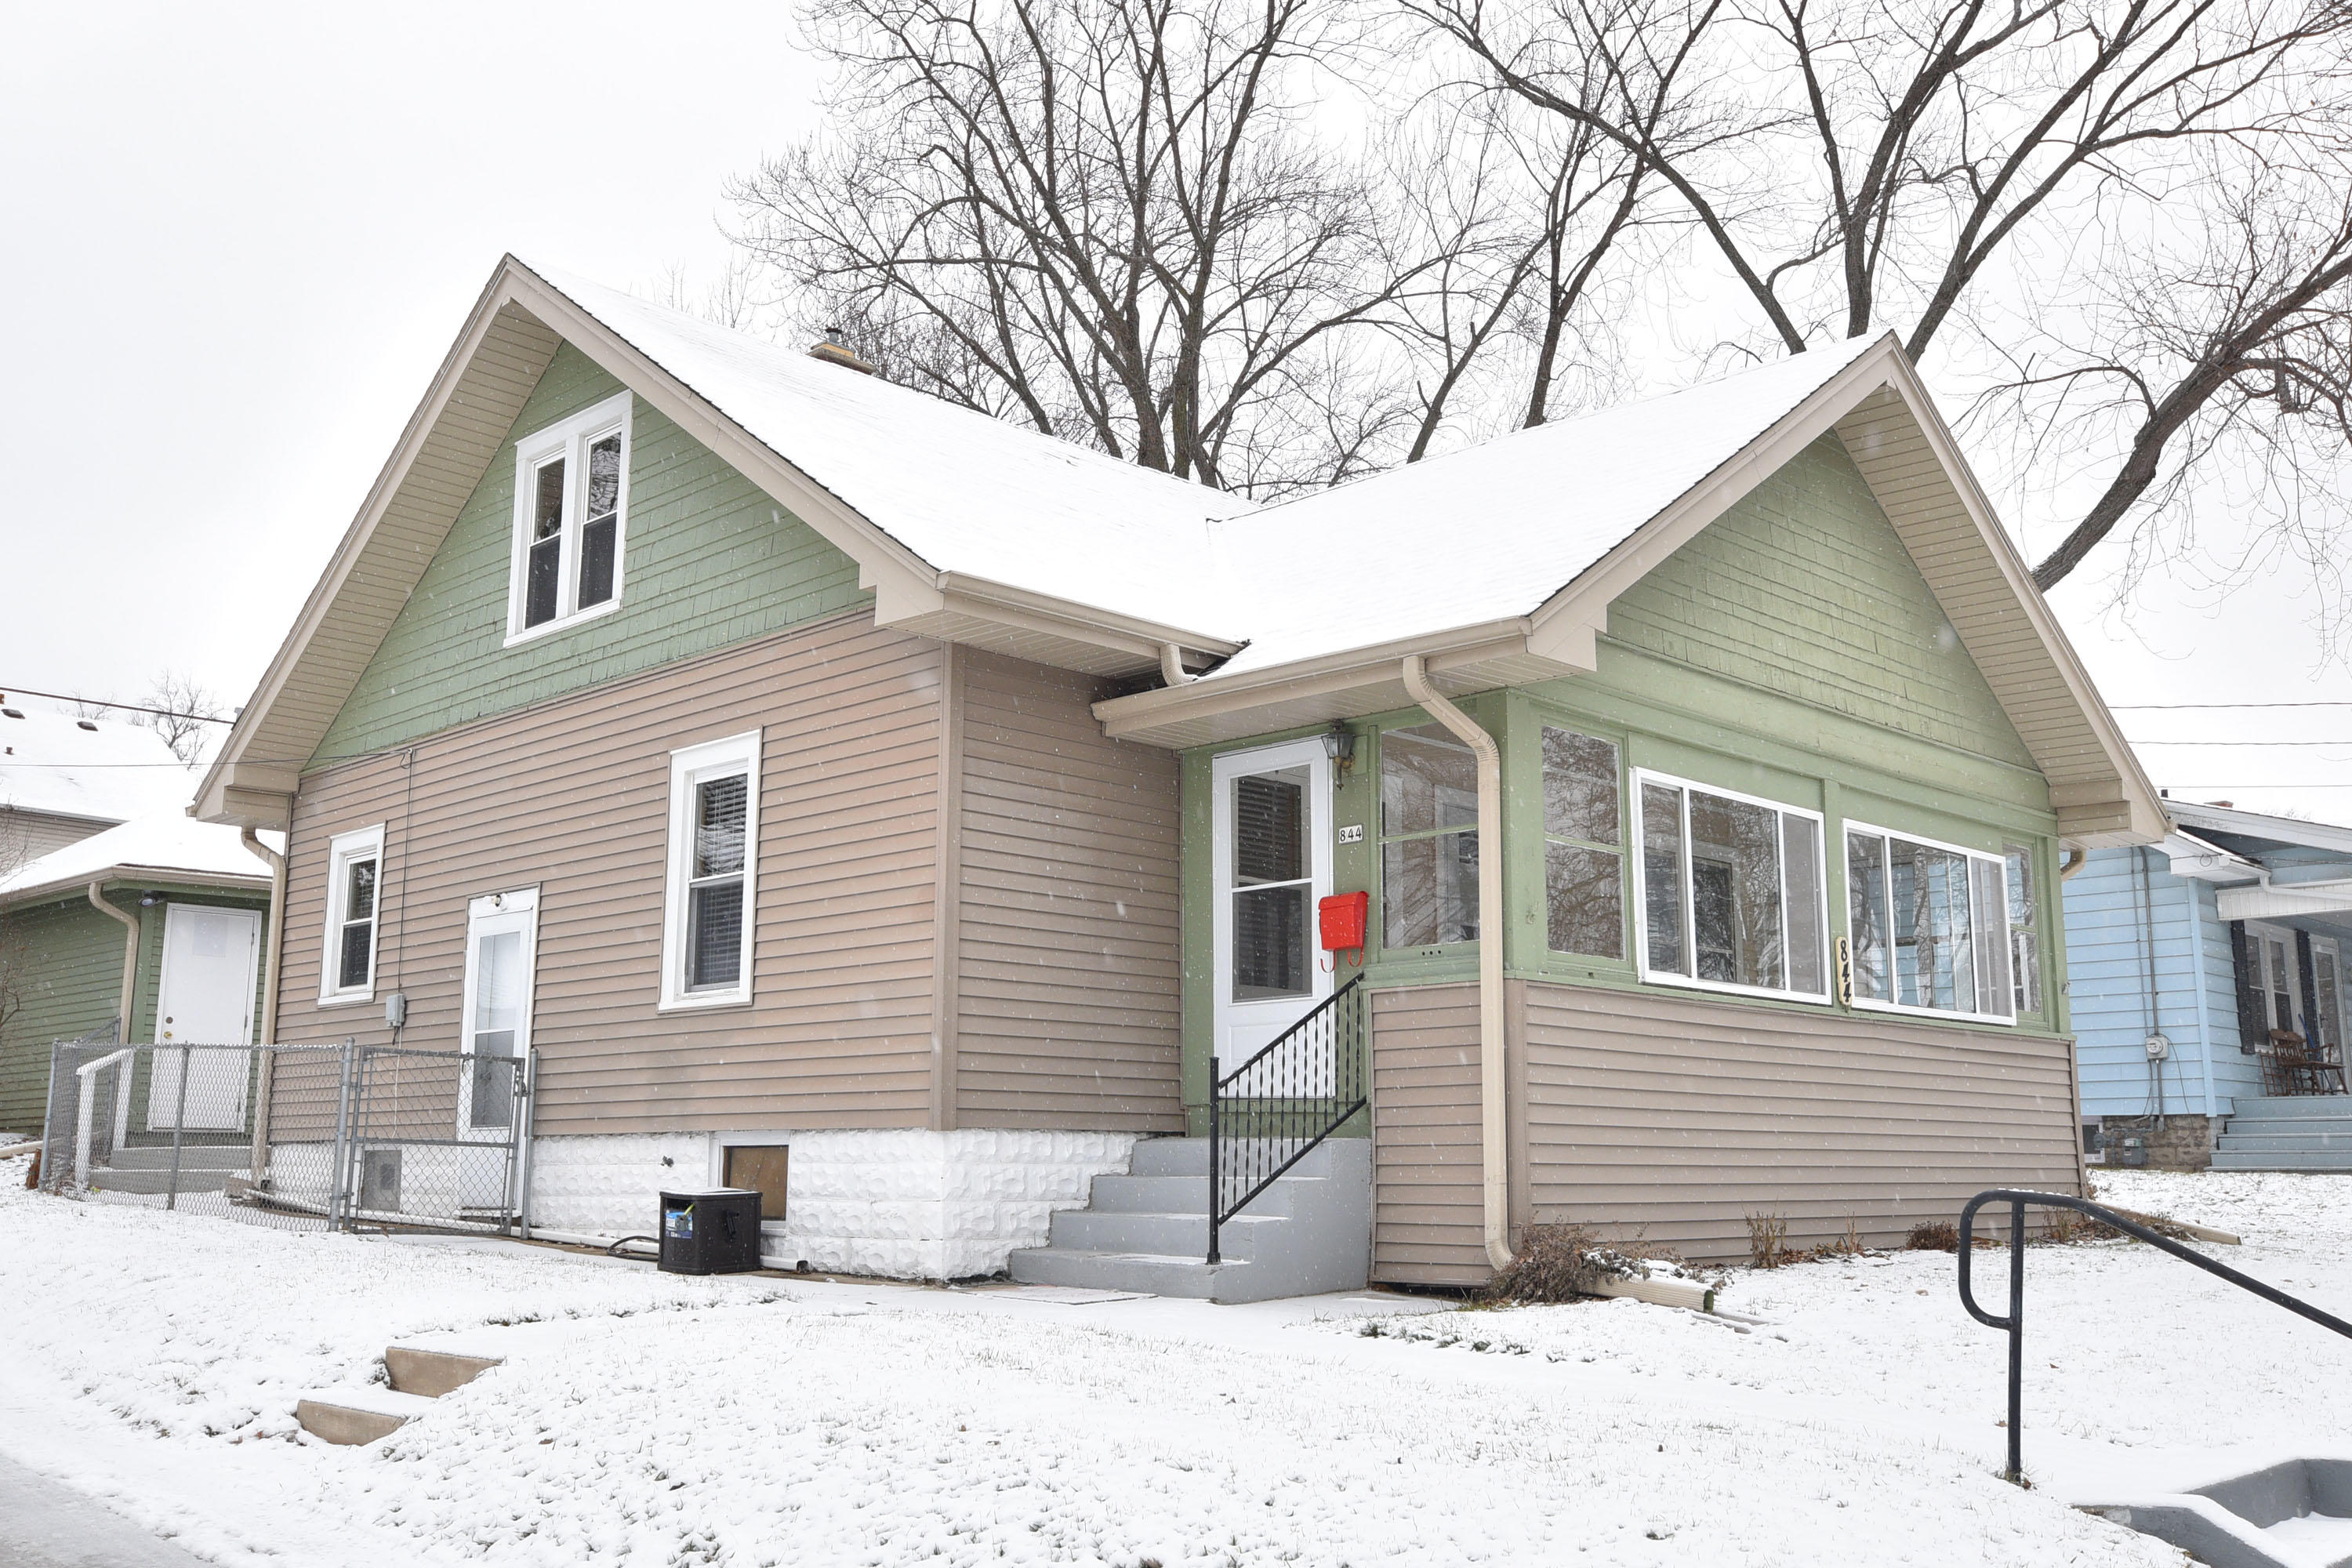 844 Perkins Ave, Waukesha, Wisconsin 53186, 3 Bedrooms Bedrooms, ,1 BathroomBathrooms,Single-Family,For Sale,Perkins Ave,1618021